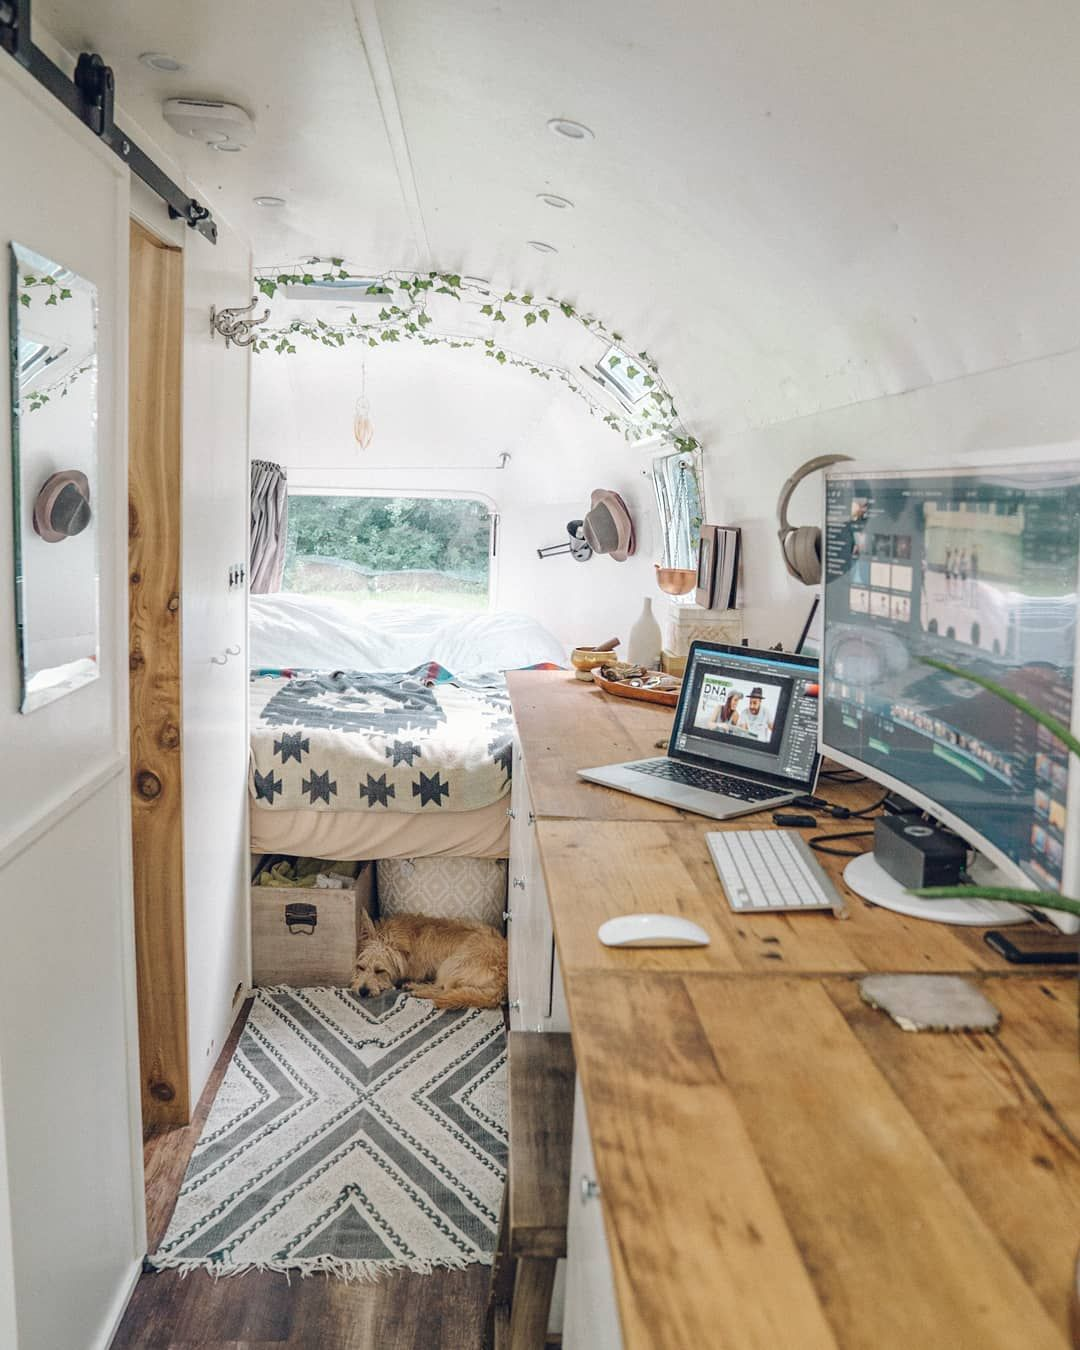 "Photo of Luna the Airstream on Instagram: ""A typical day in Luna. Edit videos for our YouTube channel and blog while @atlasadventurepup takes a nap after hours of playing on the beach.… """